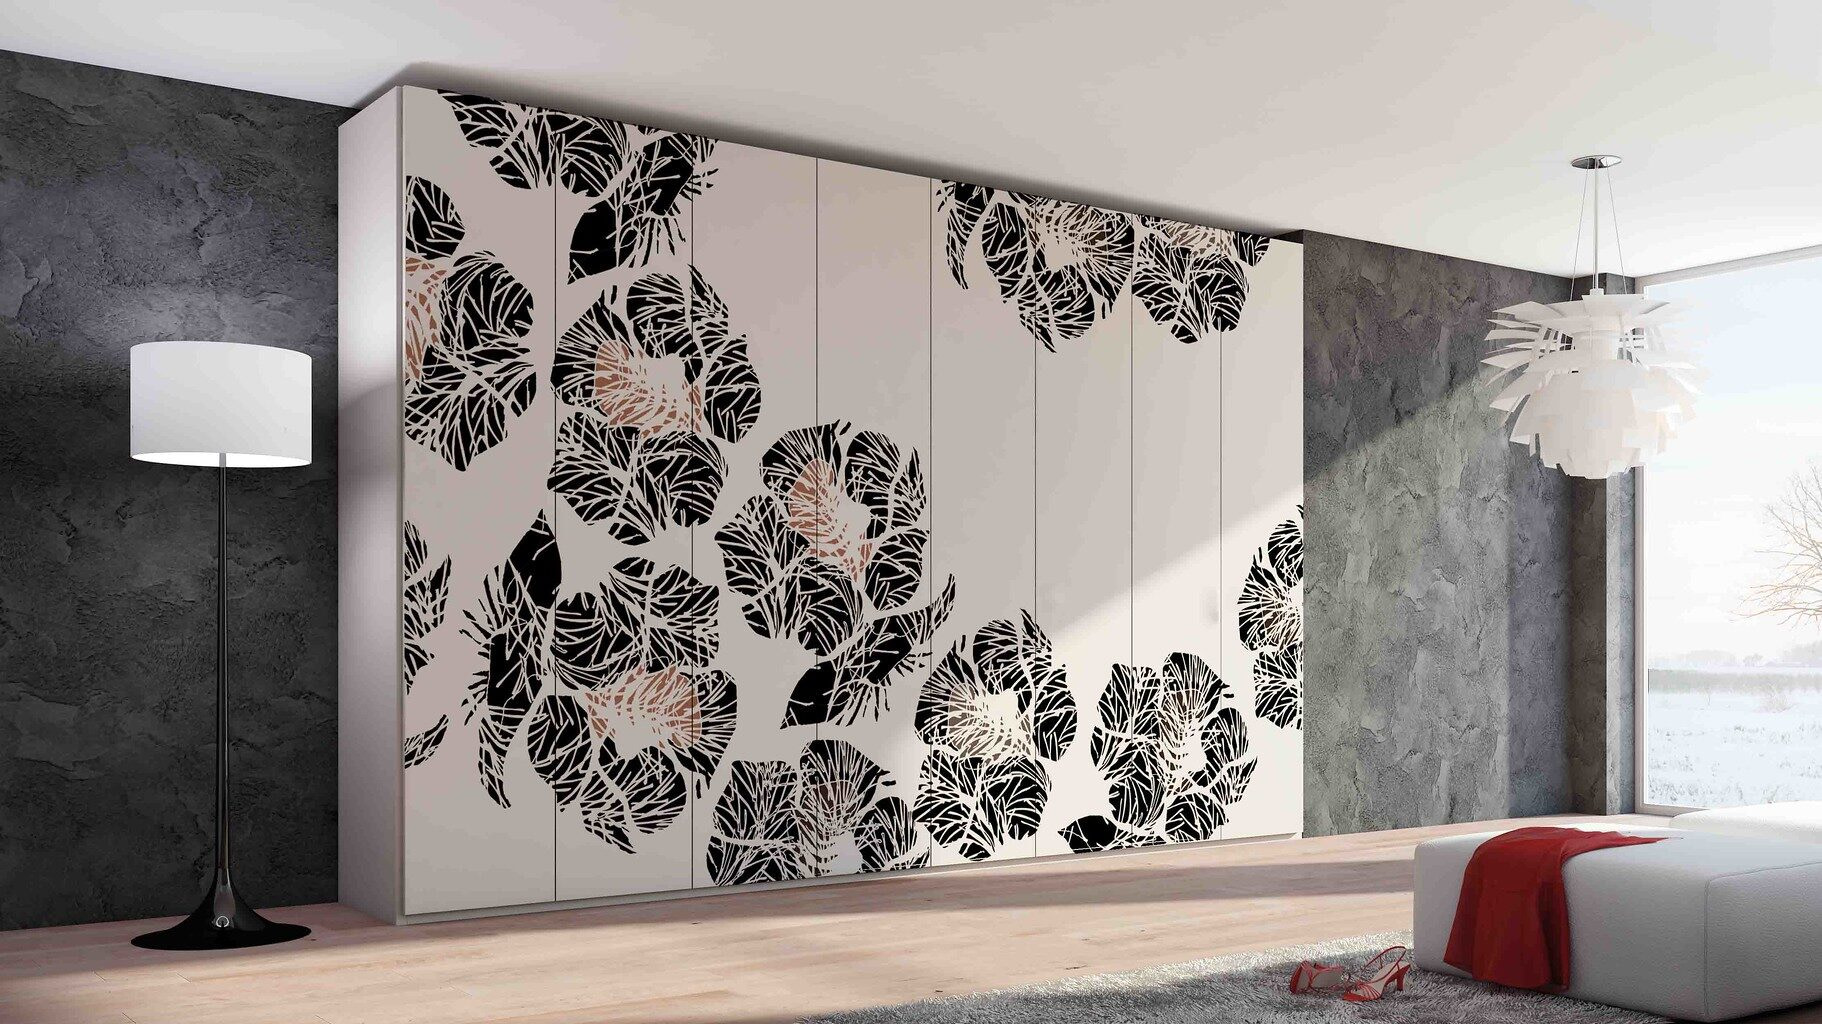 Wallpaper design modular interior 12